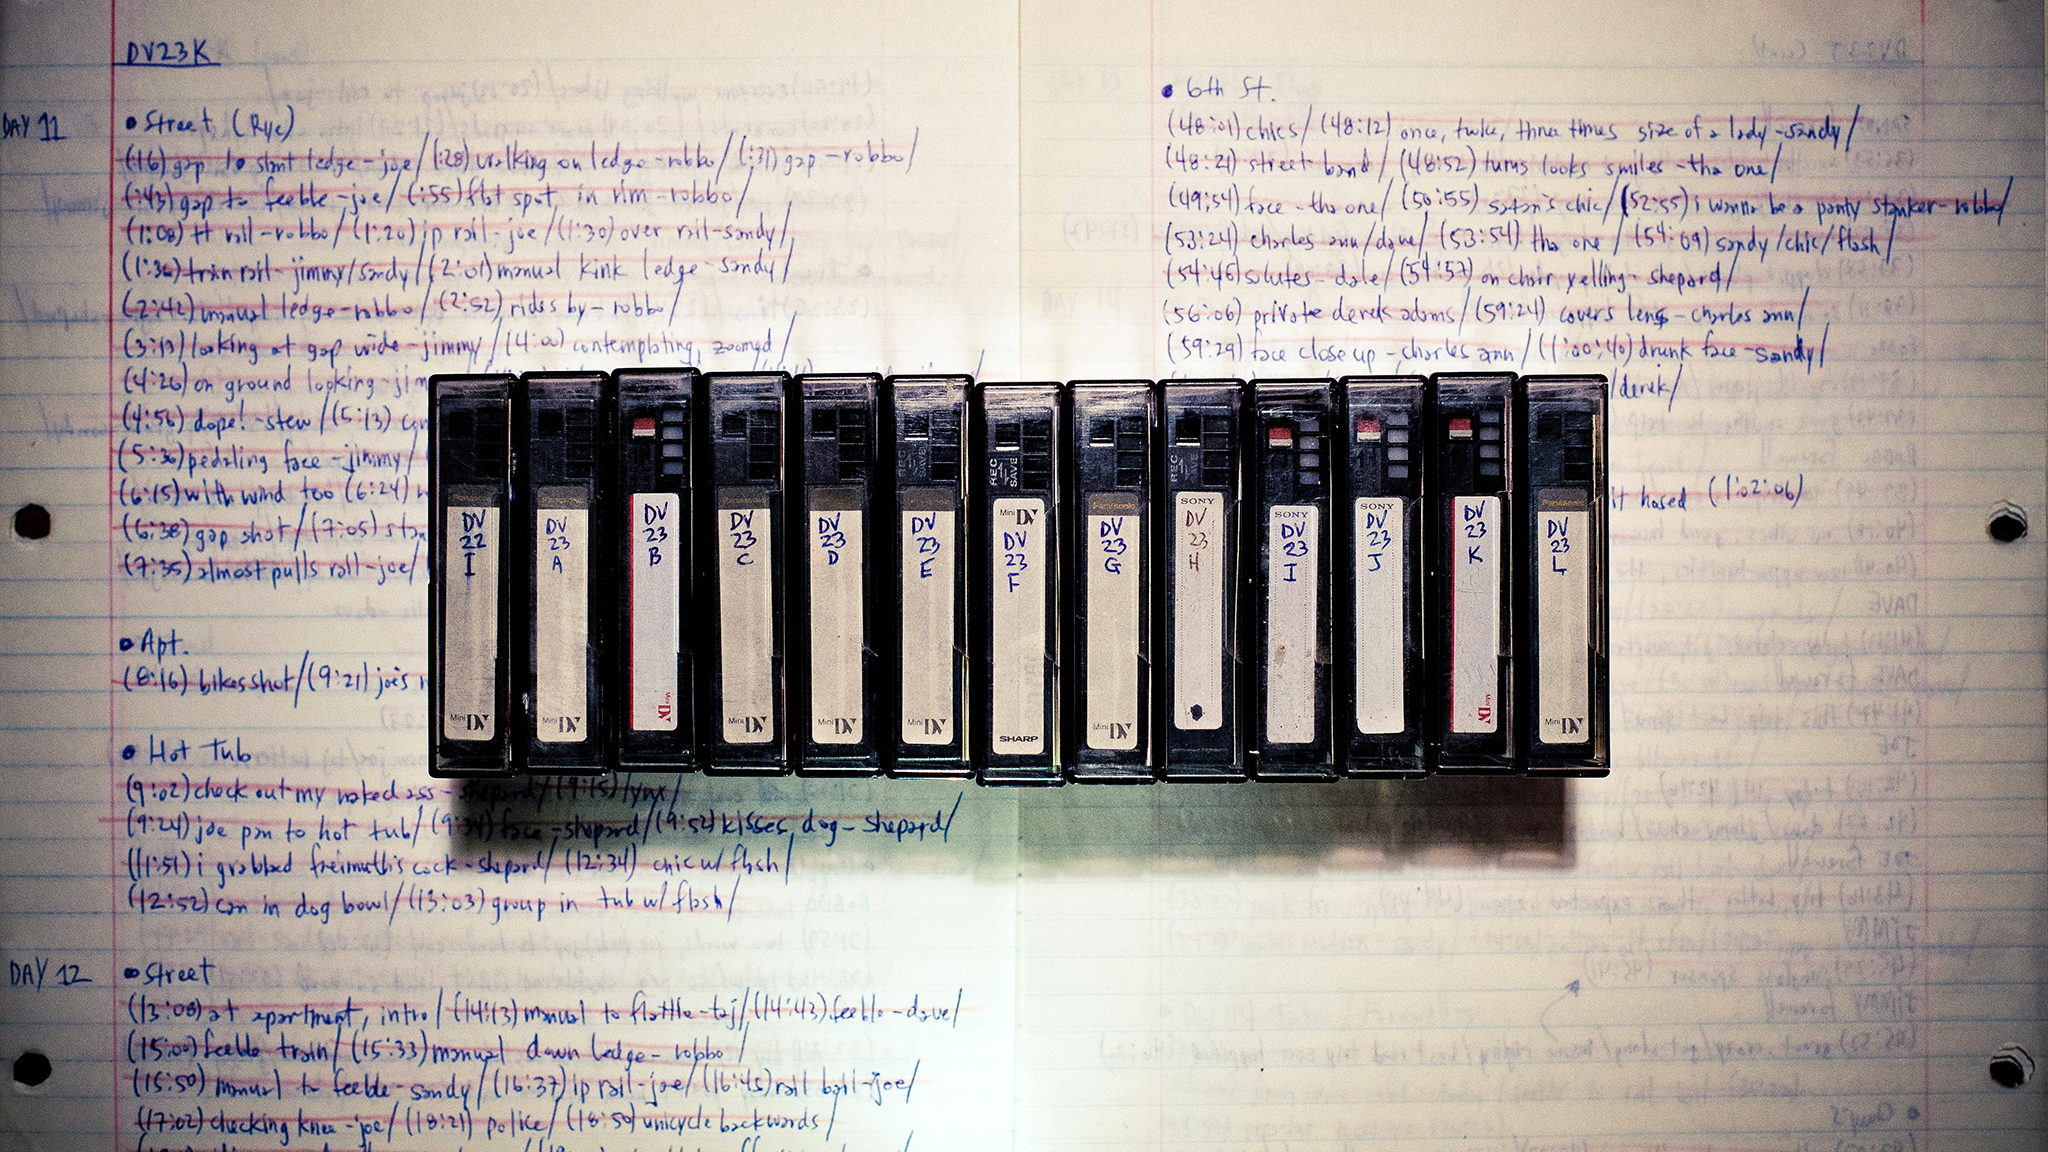 Original tapes and production notes from Props Road Fools '98.